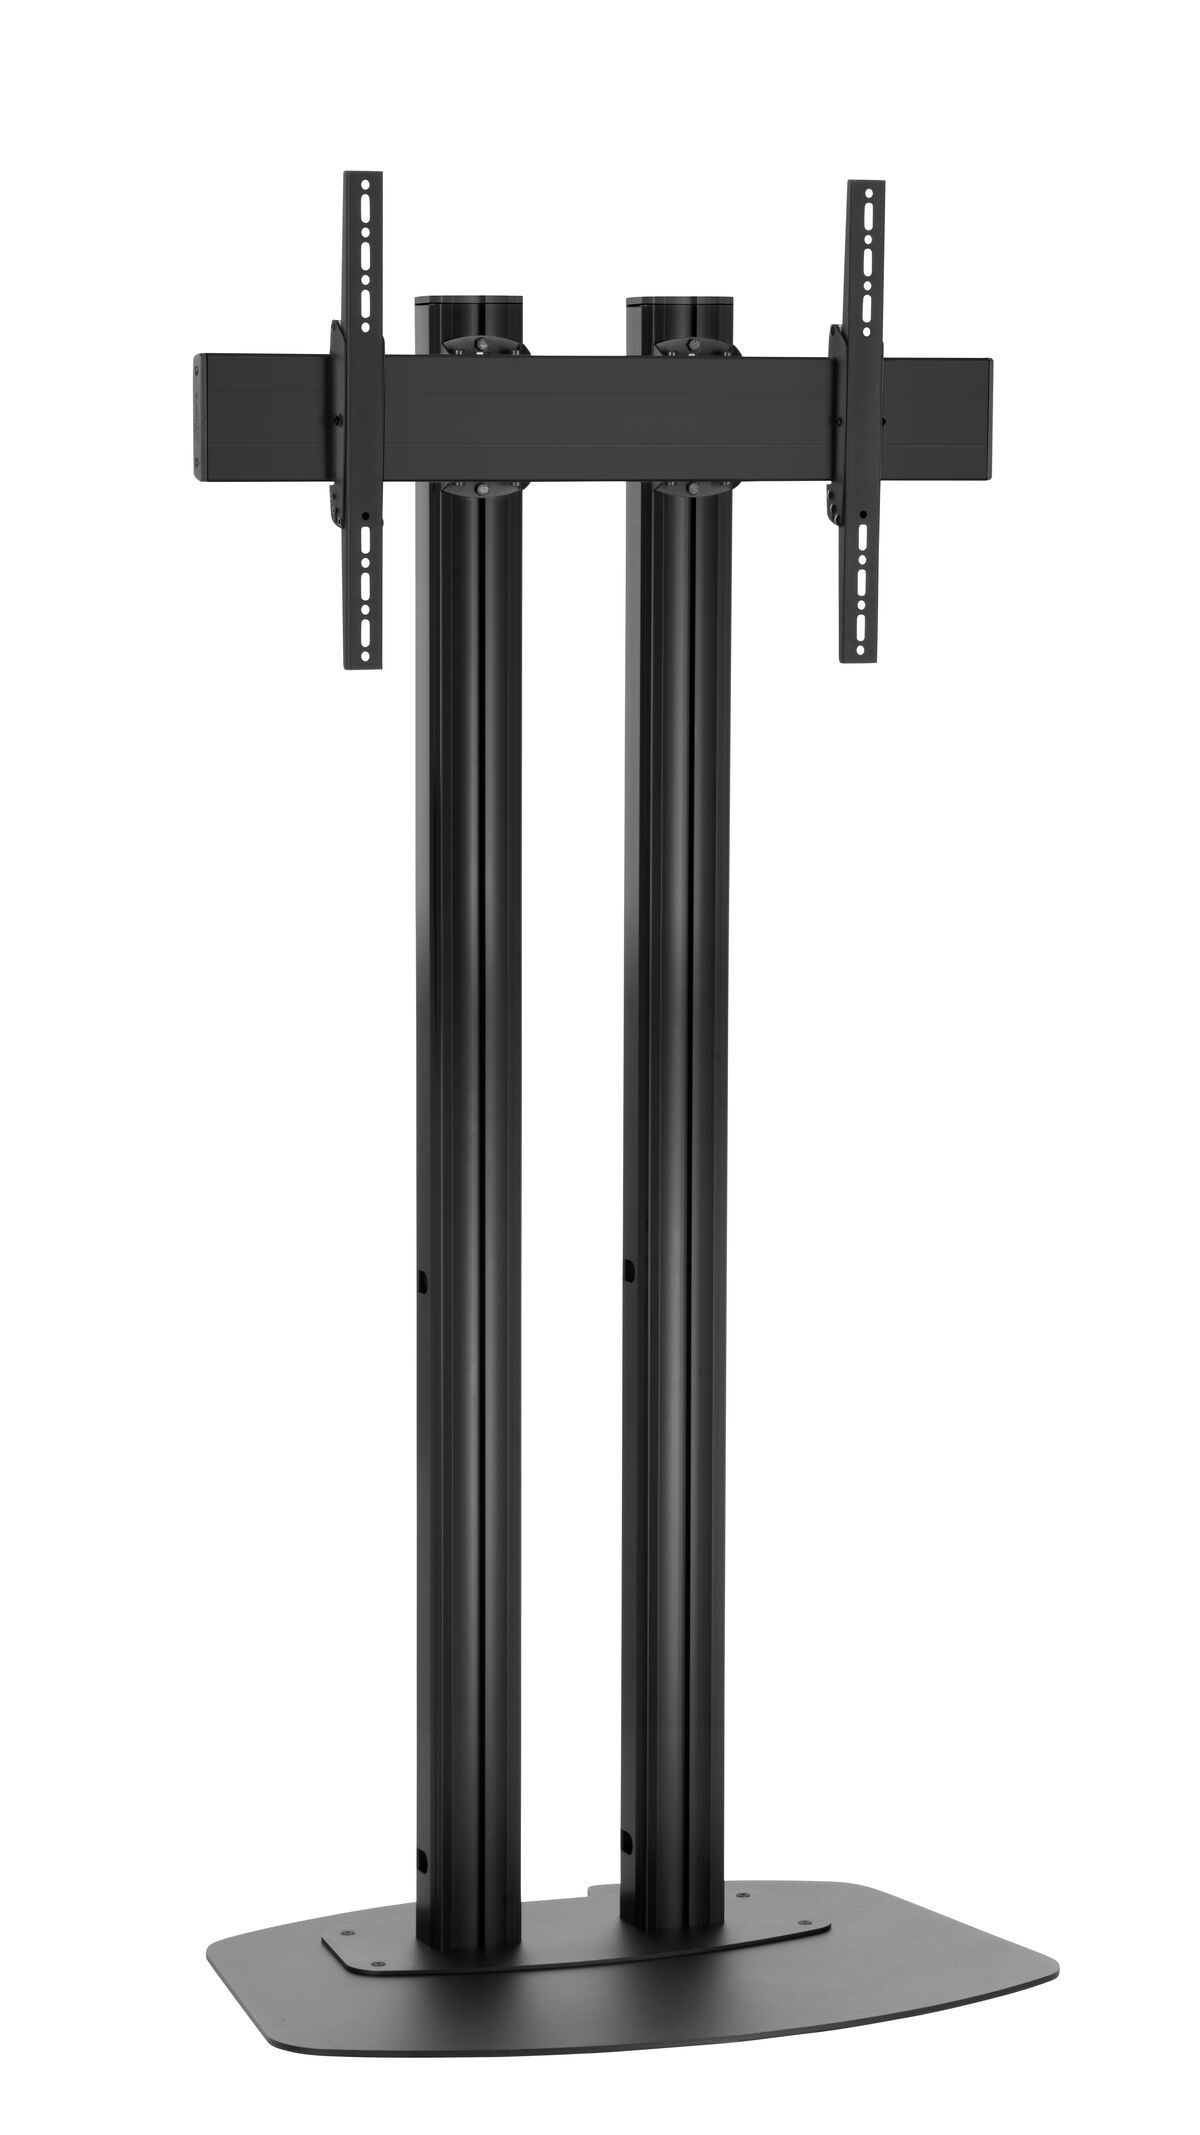 Vogel's FD1564B Floor stand - Product